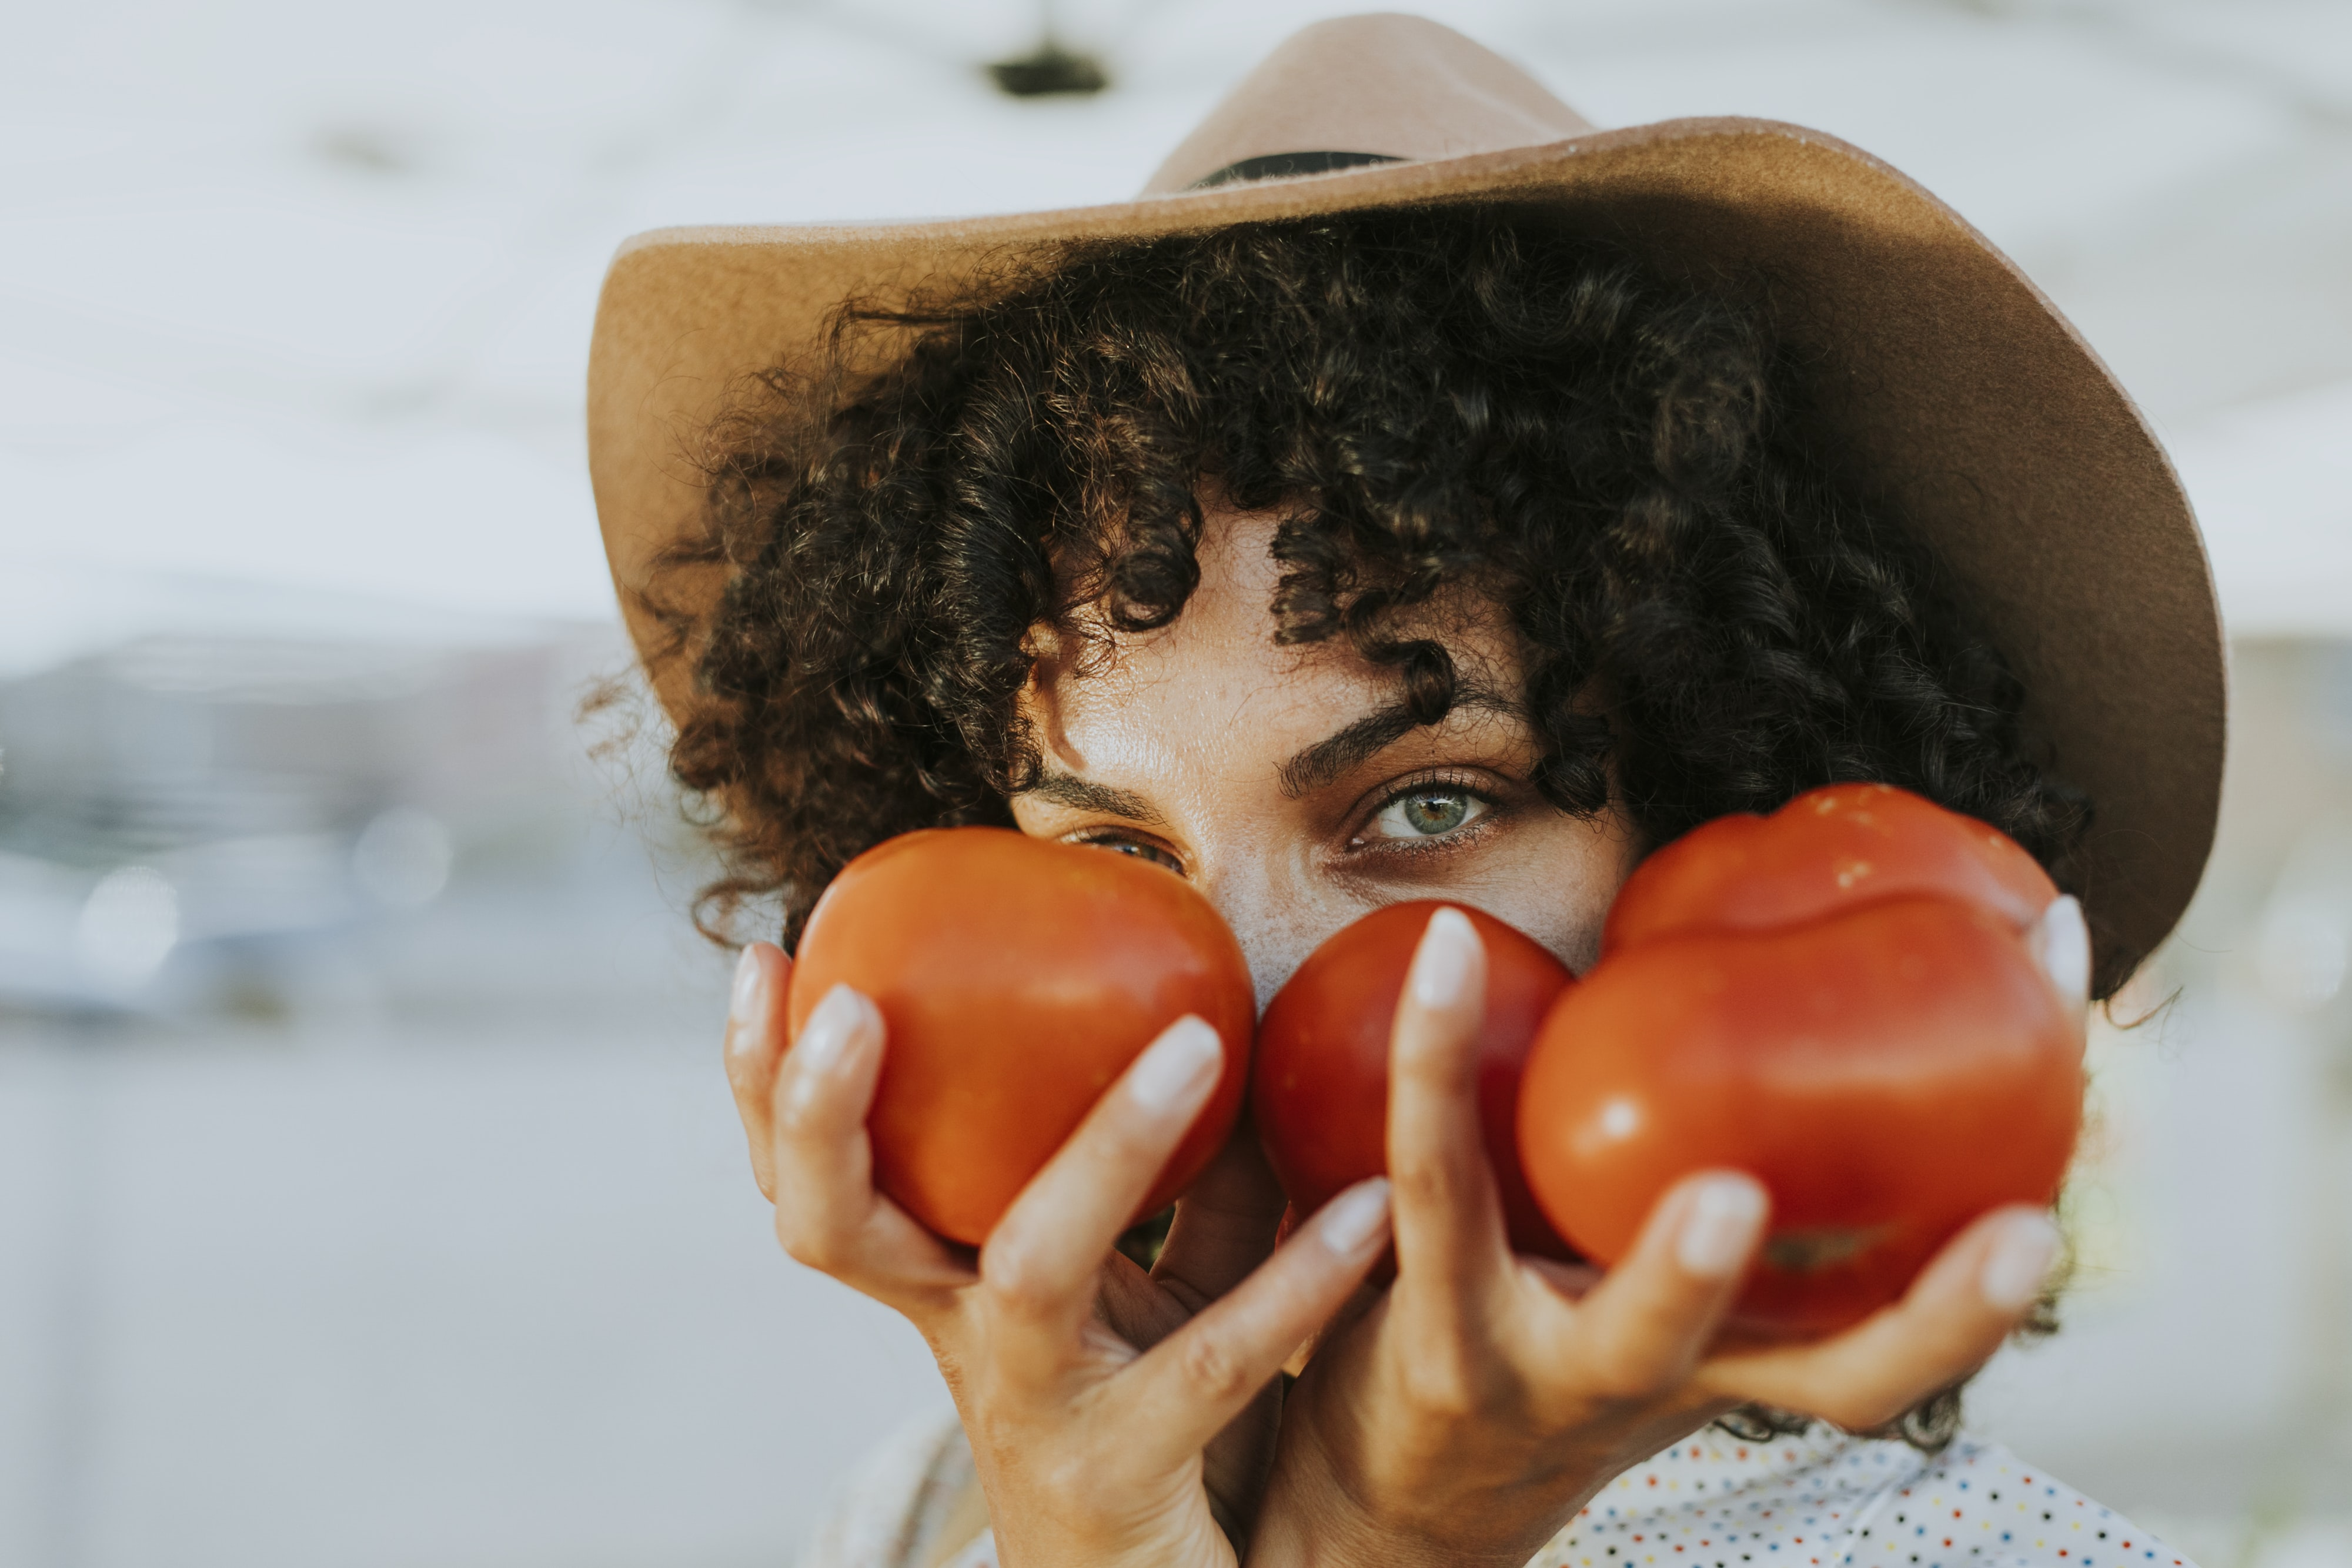 person holding red tomatoes